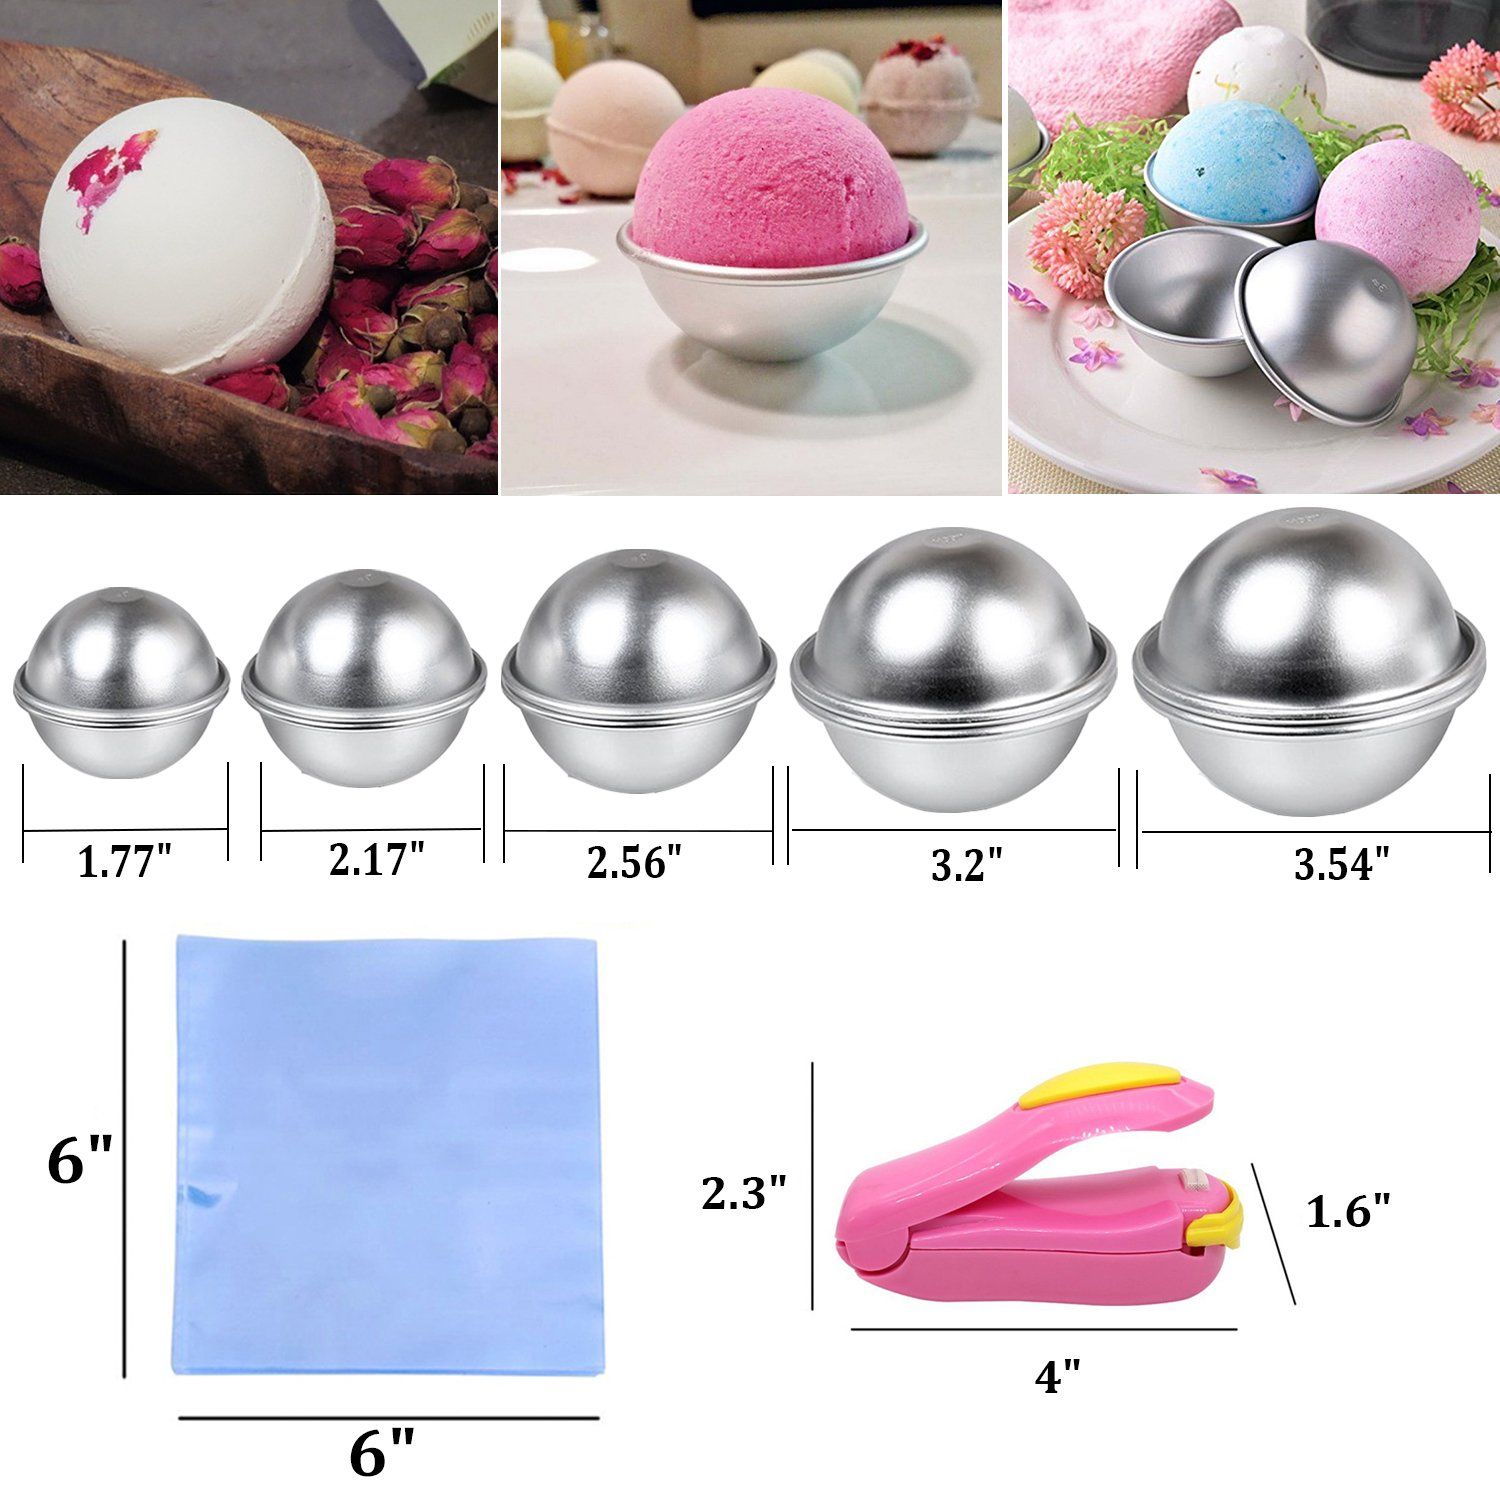 Bath Bomb Mold, Outgeek 217Pcs DIY Bath Bomb Kit Include Metal Bath Bomb Mold 8 Set 16 Pieces 5 Size, 200 Shrink Wrap Bags, Mini Heat Sealer for Bath Bombs Making & Soaps by Outgeek (Image #2)